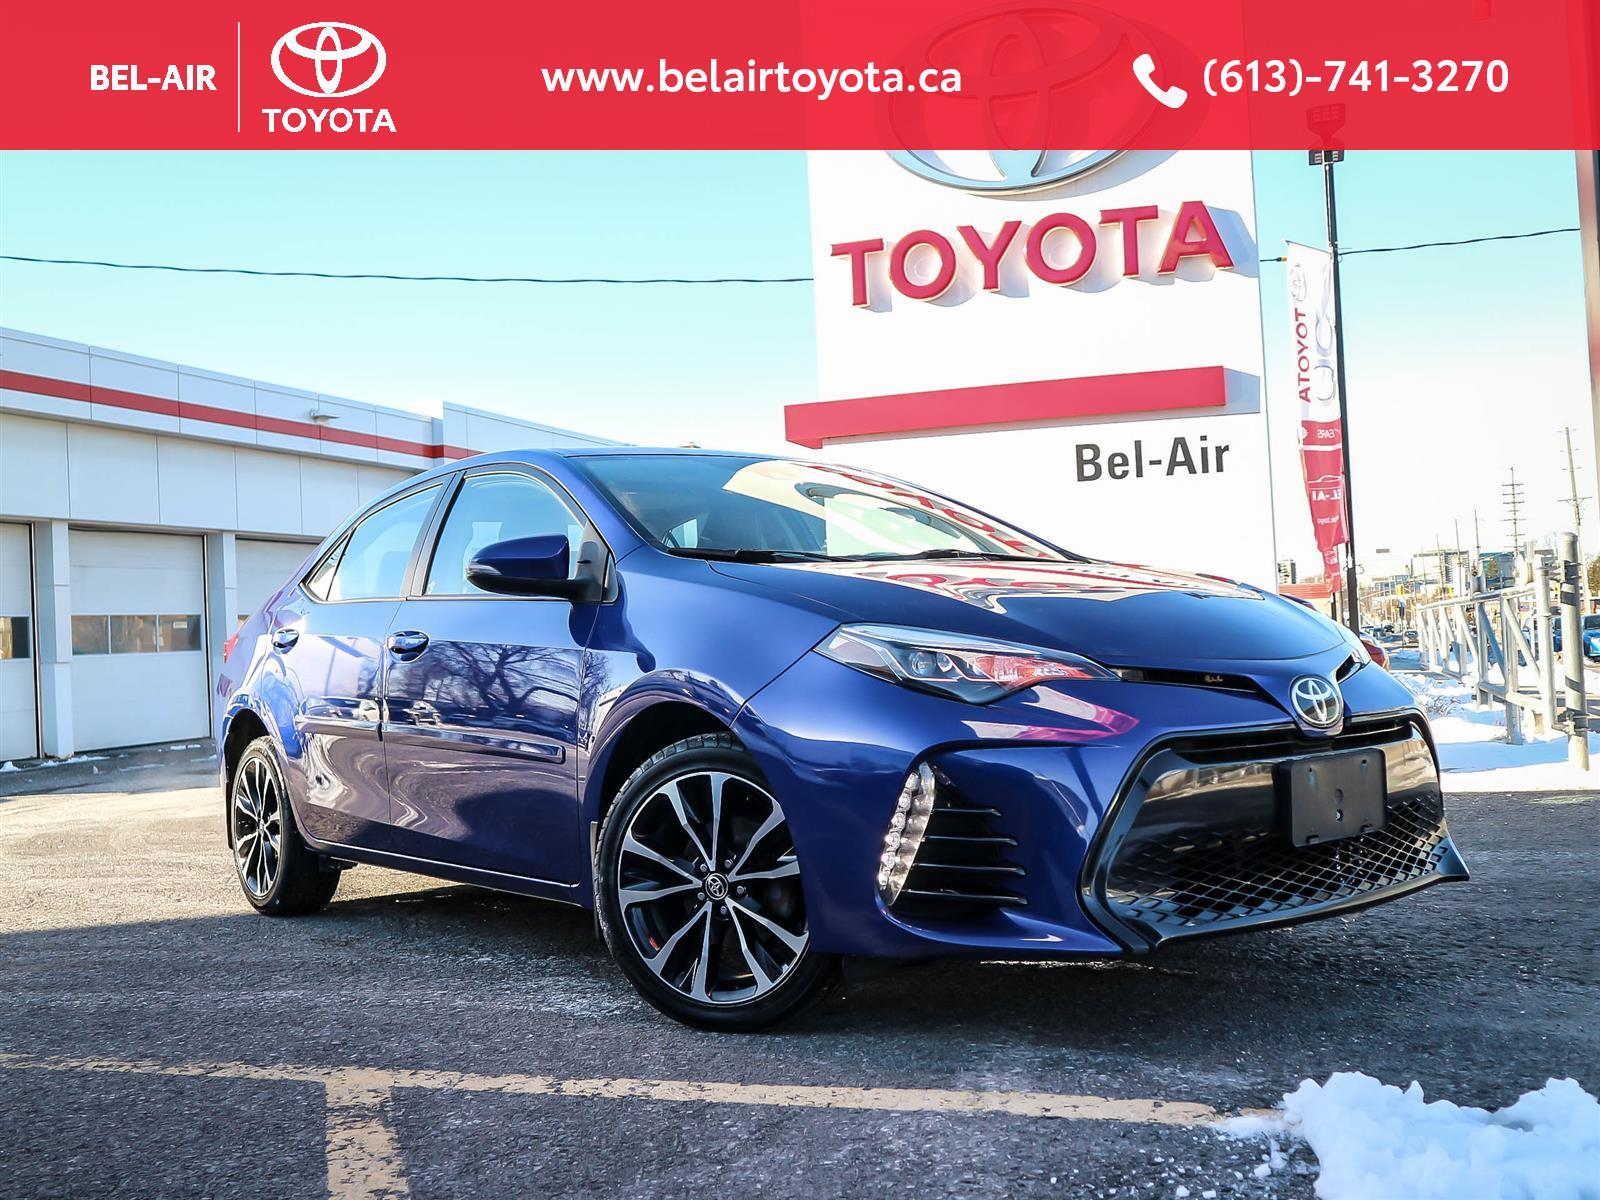 2017 Toyota Corolla at Bel-Air Toyota